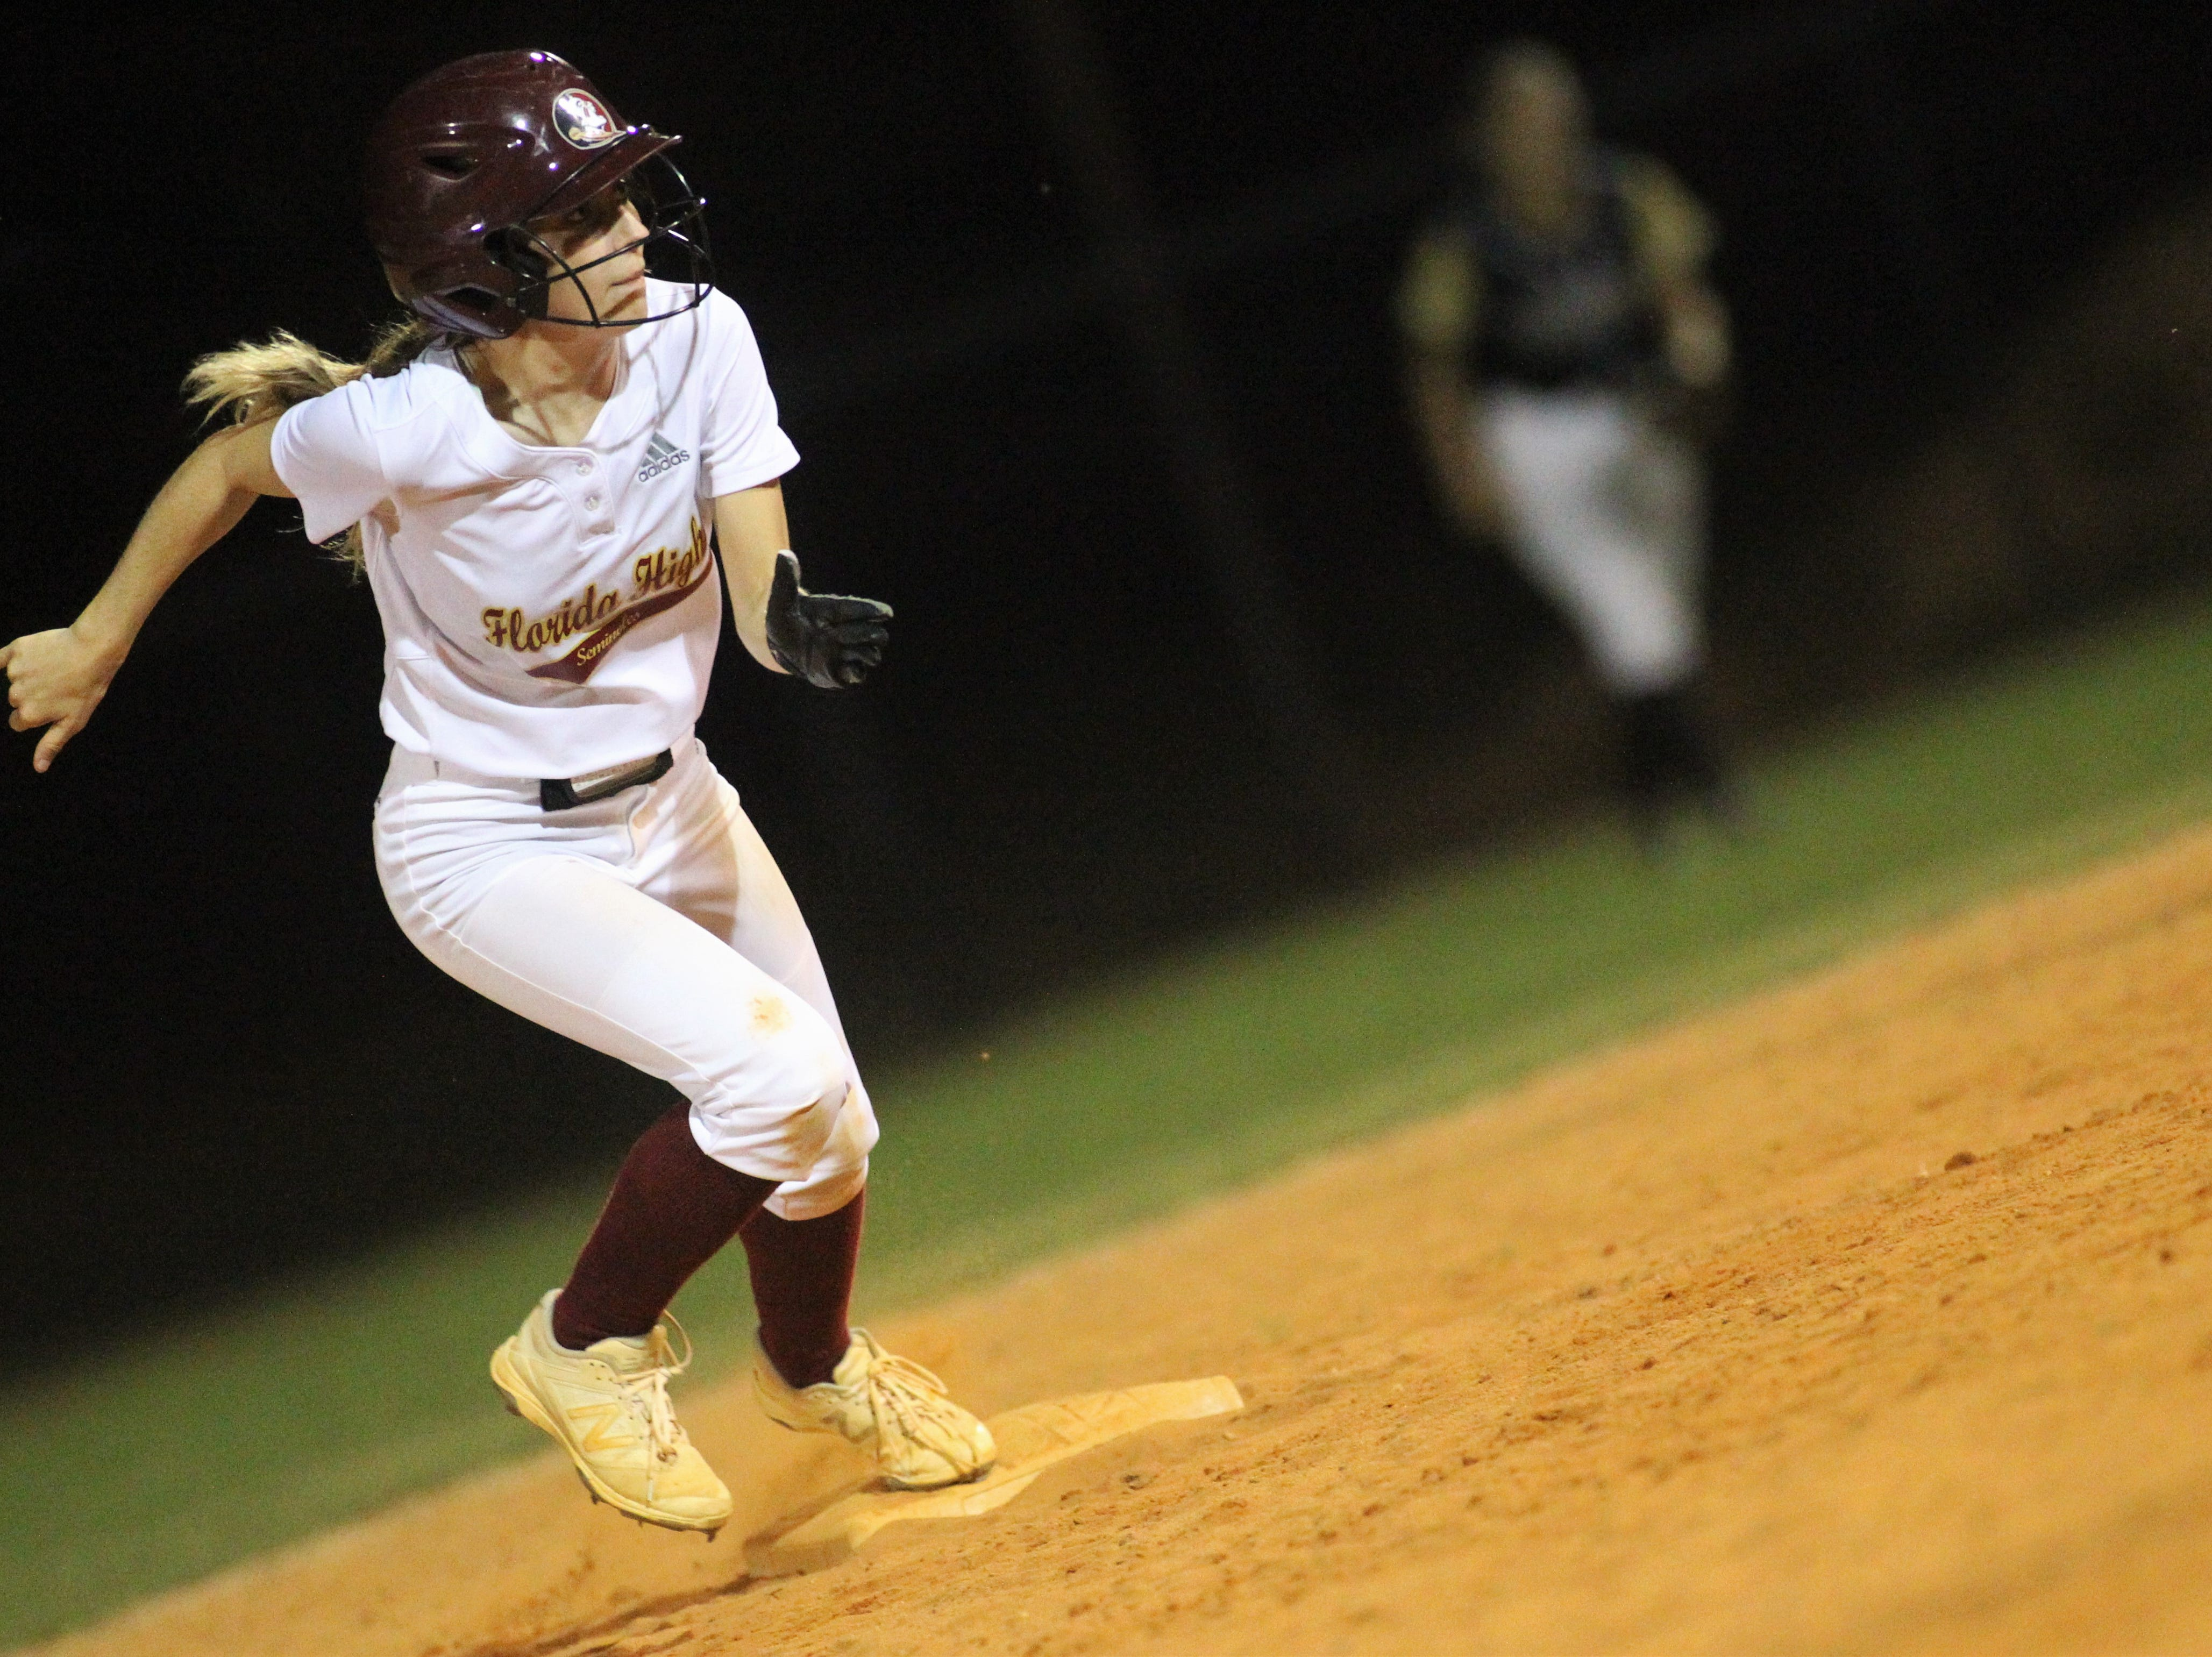 Florida High junior Grace McDaniel takes off from second base as Lincoln's softball team beat Florida High 7-3 on Thursday, April 4, 2019.